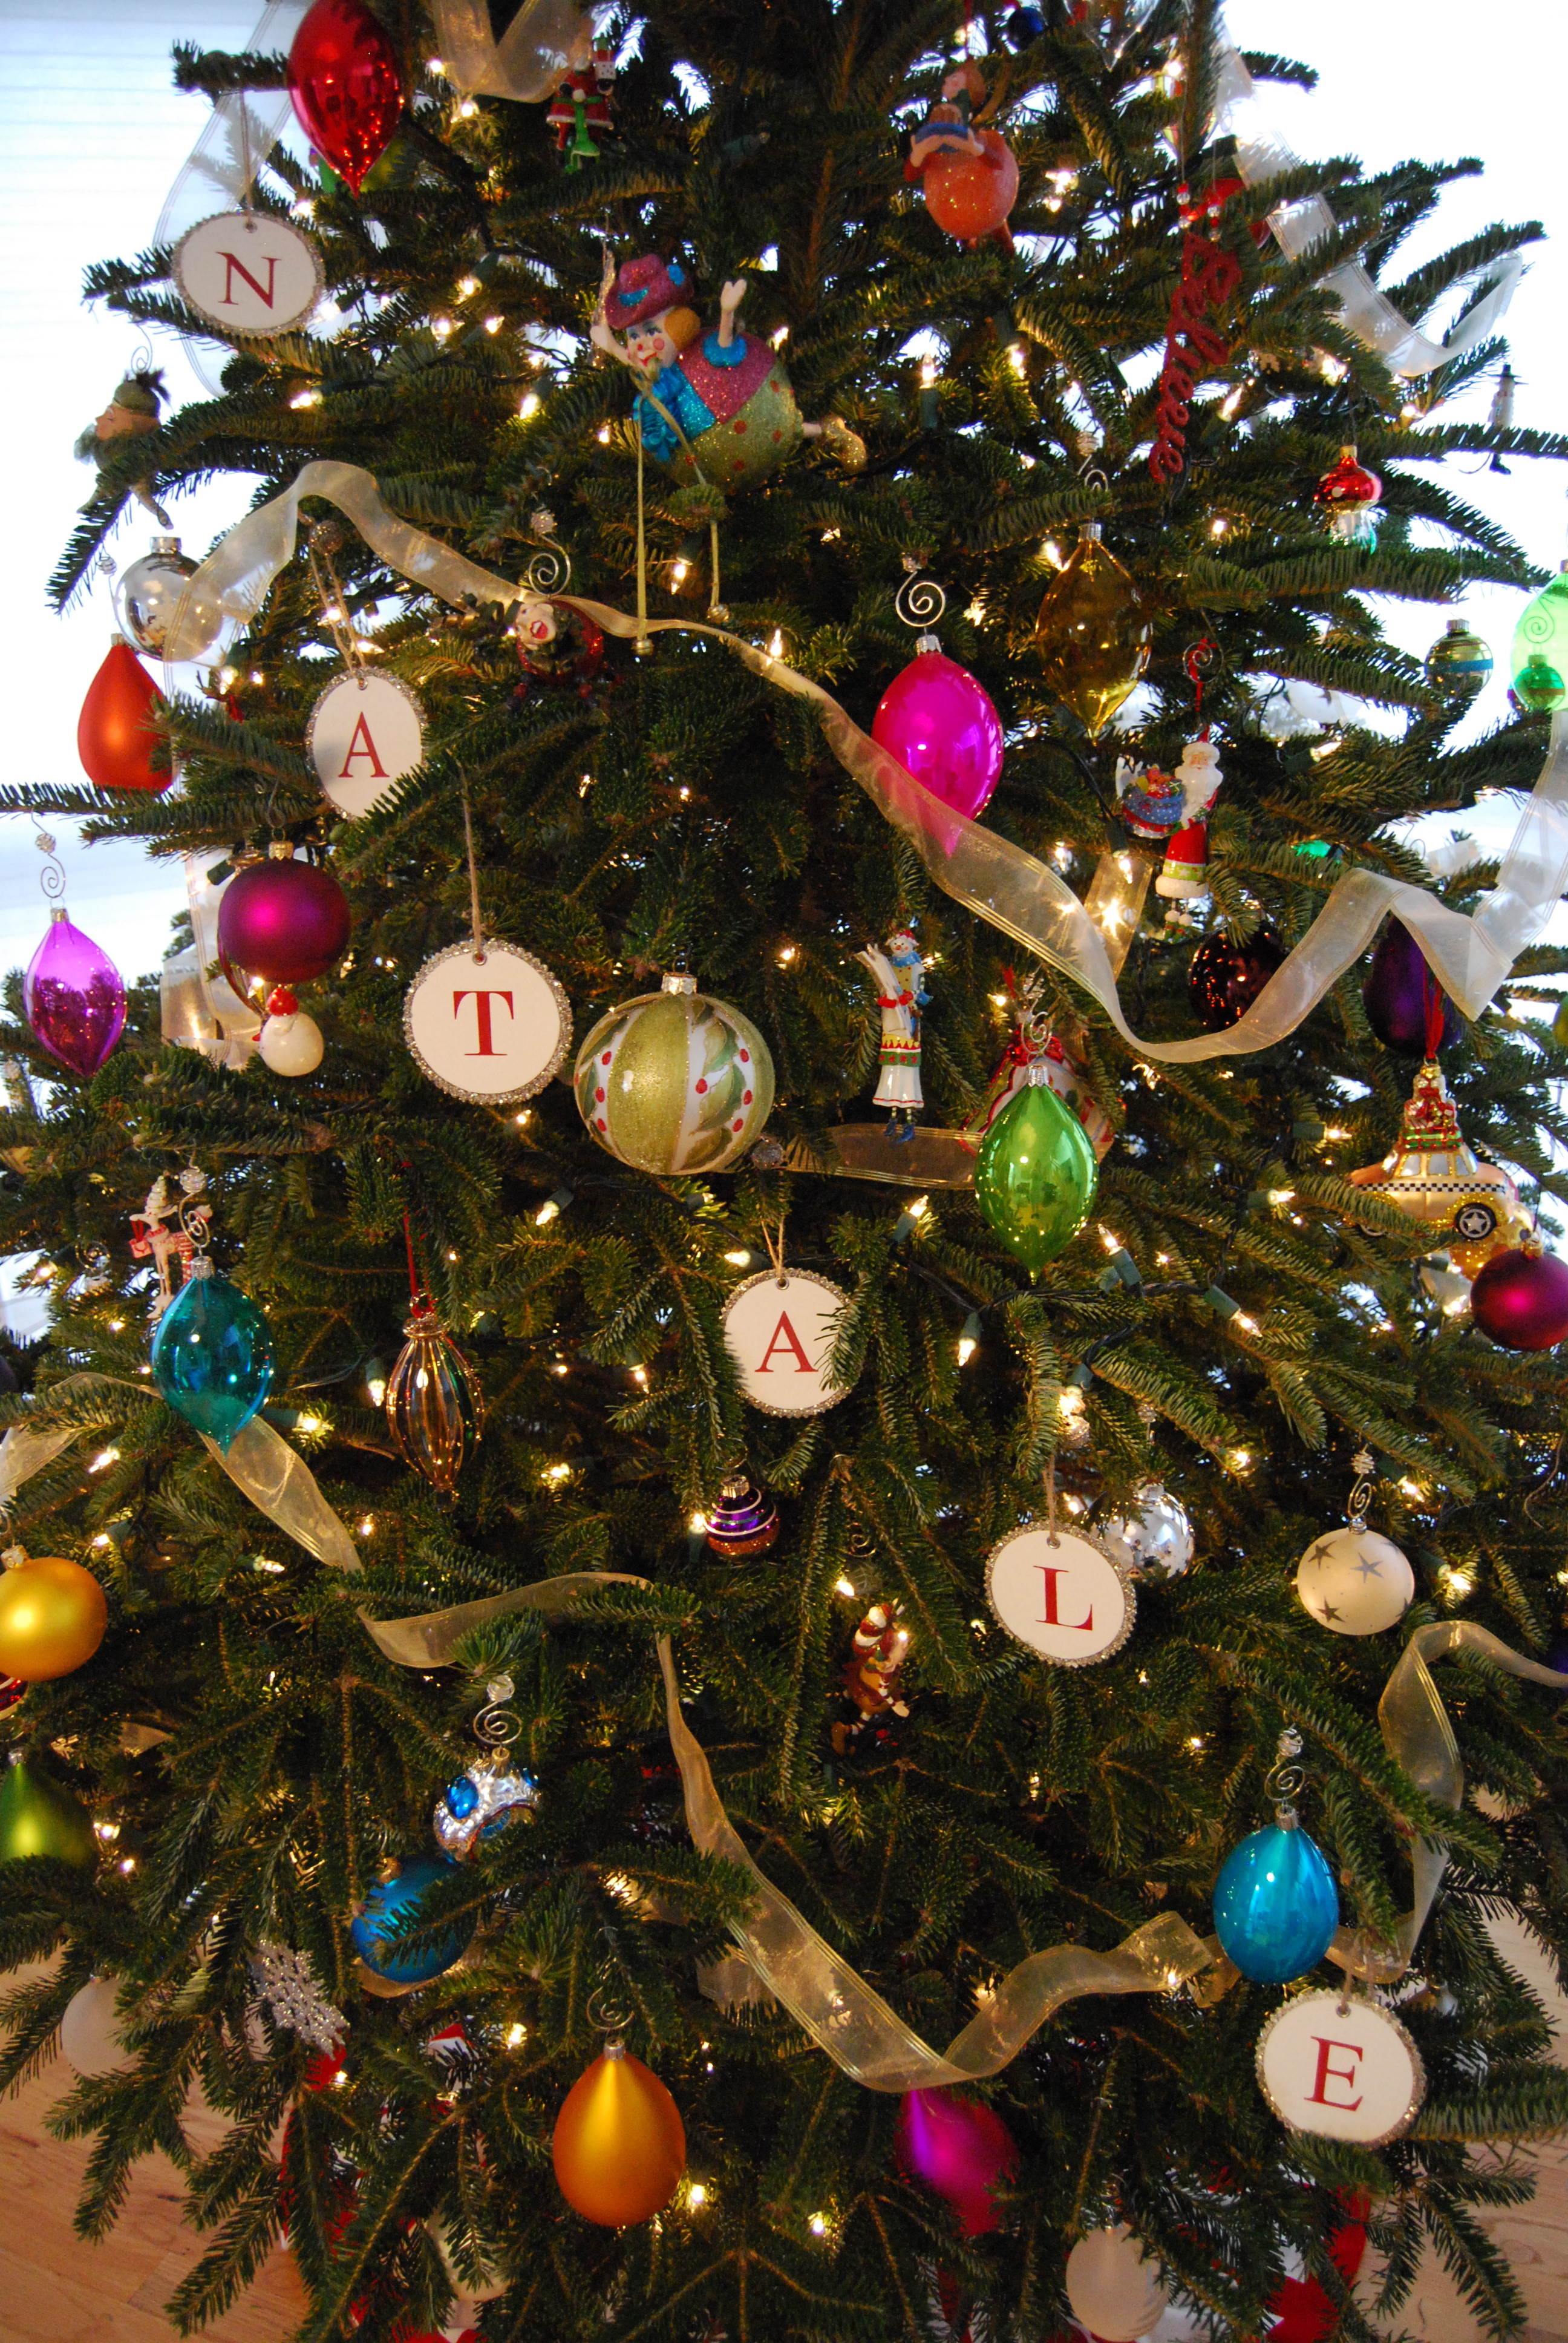 December the 8th and the Christmas Tree « Sharing My Italy ...